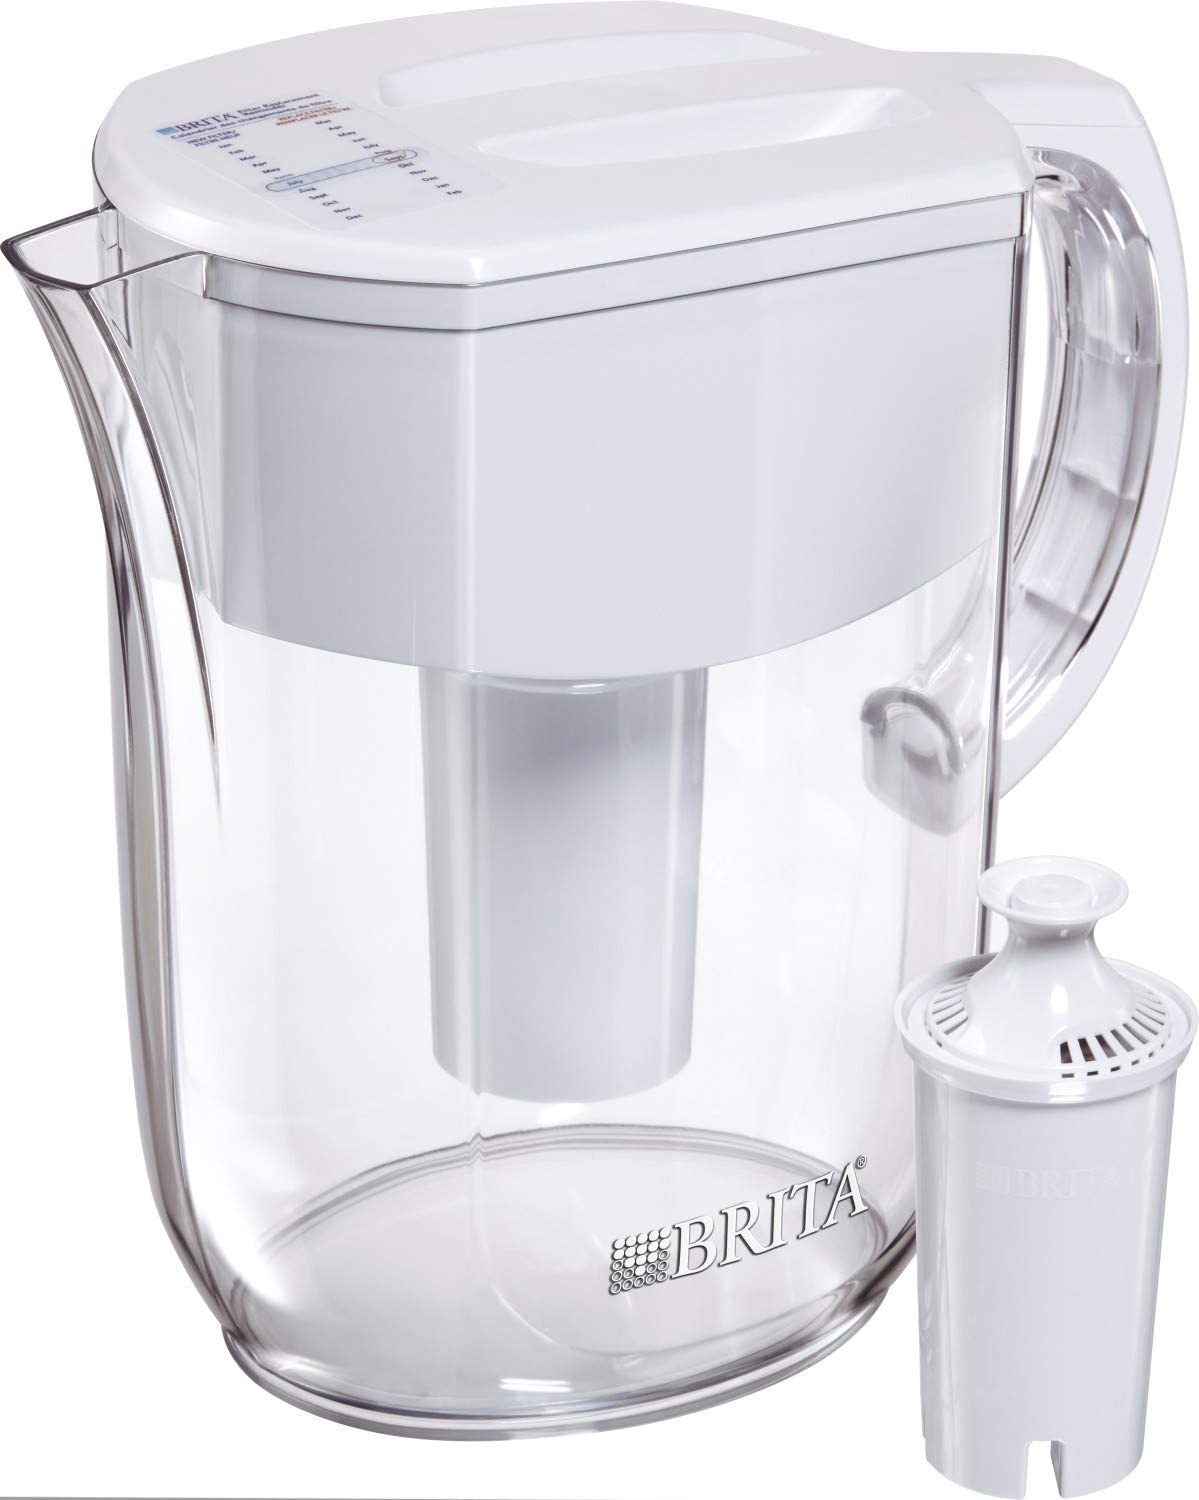 Brita Everyday Pitcher with Filter, White